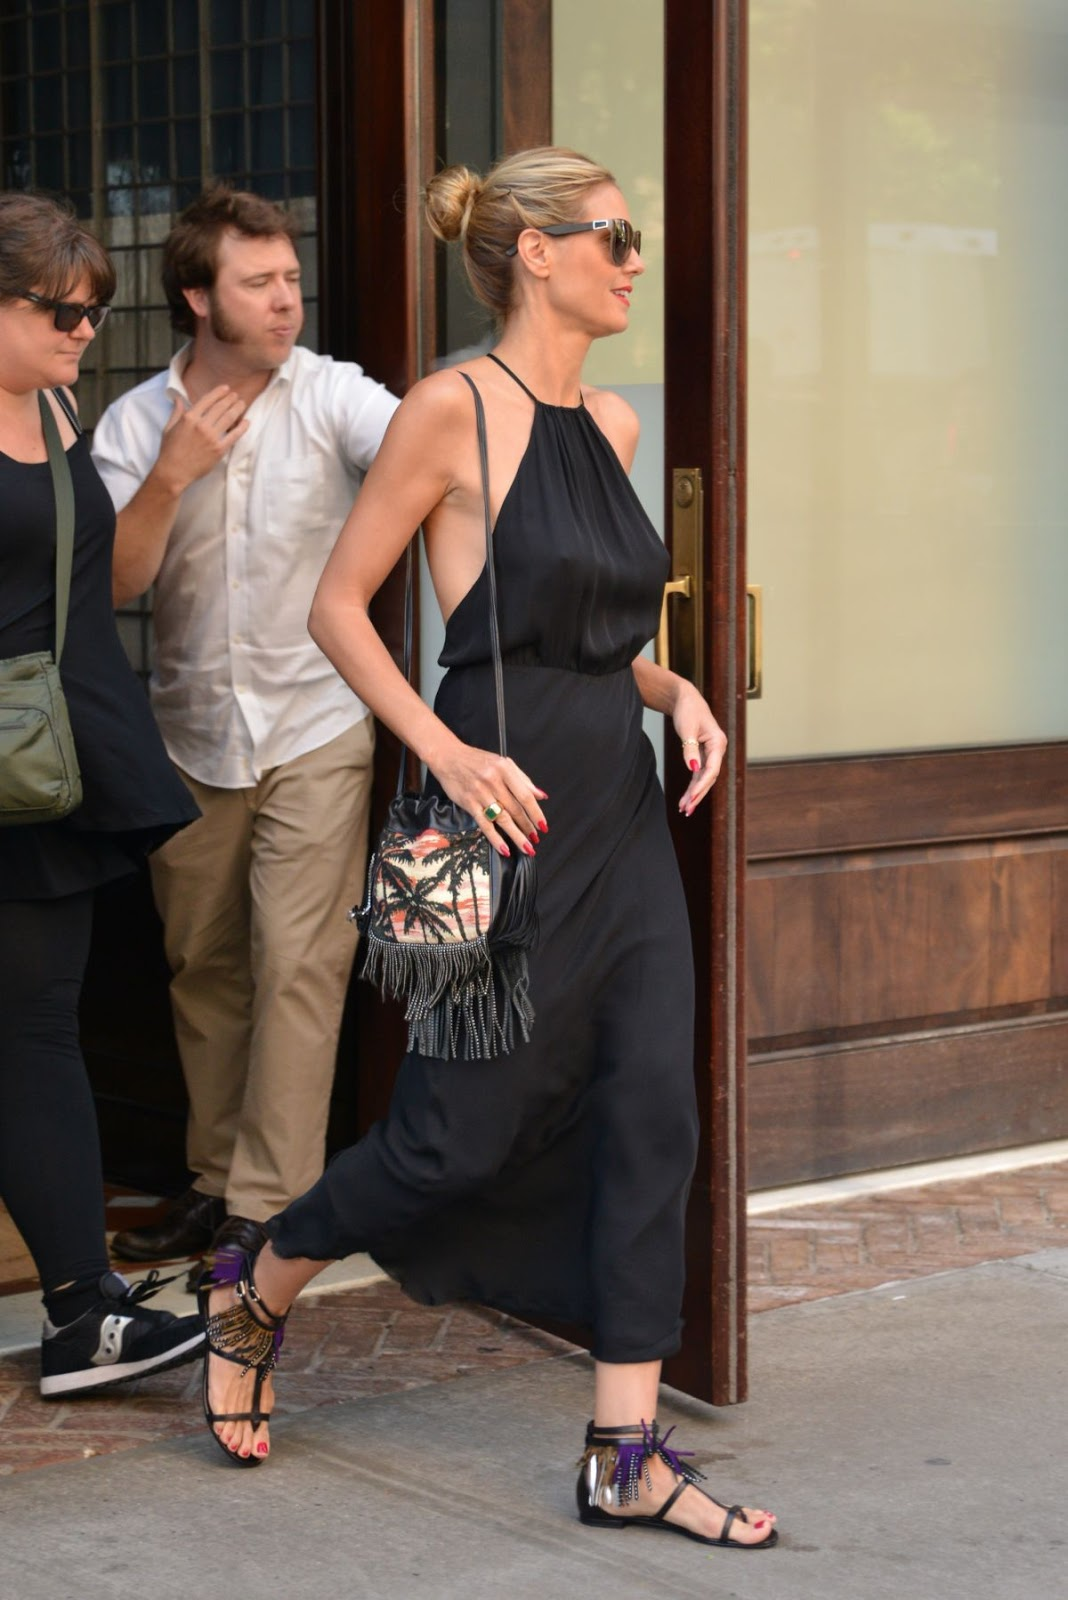 'Littlest Pet Shop' actress Heidi Klum out in Tribeca, NYC